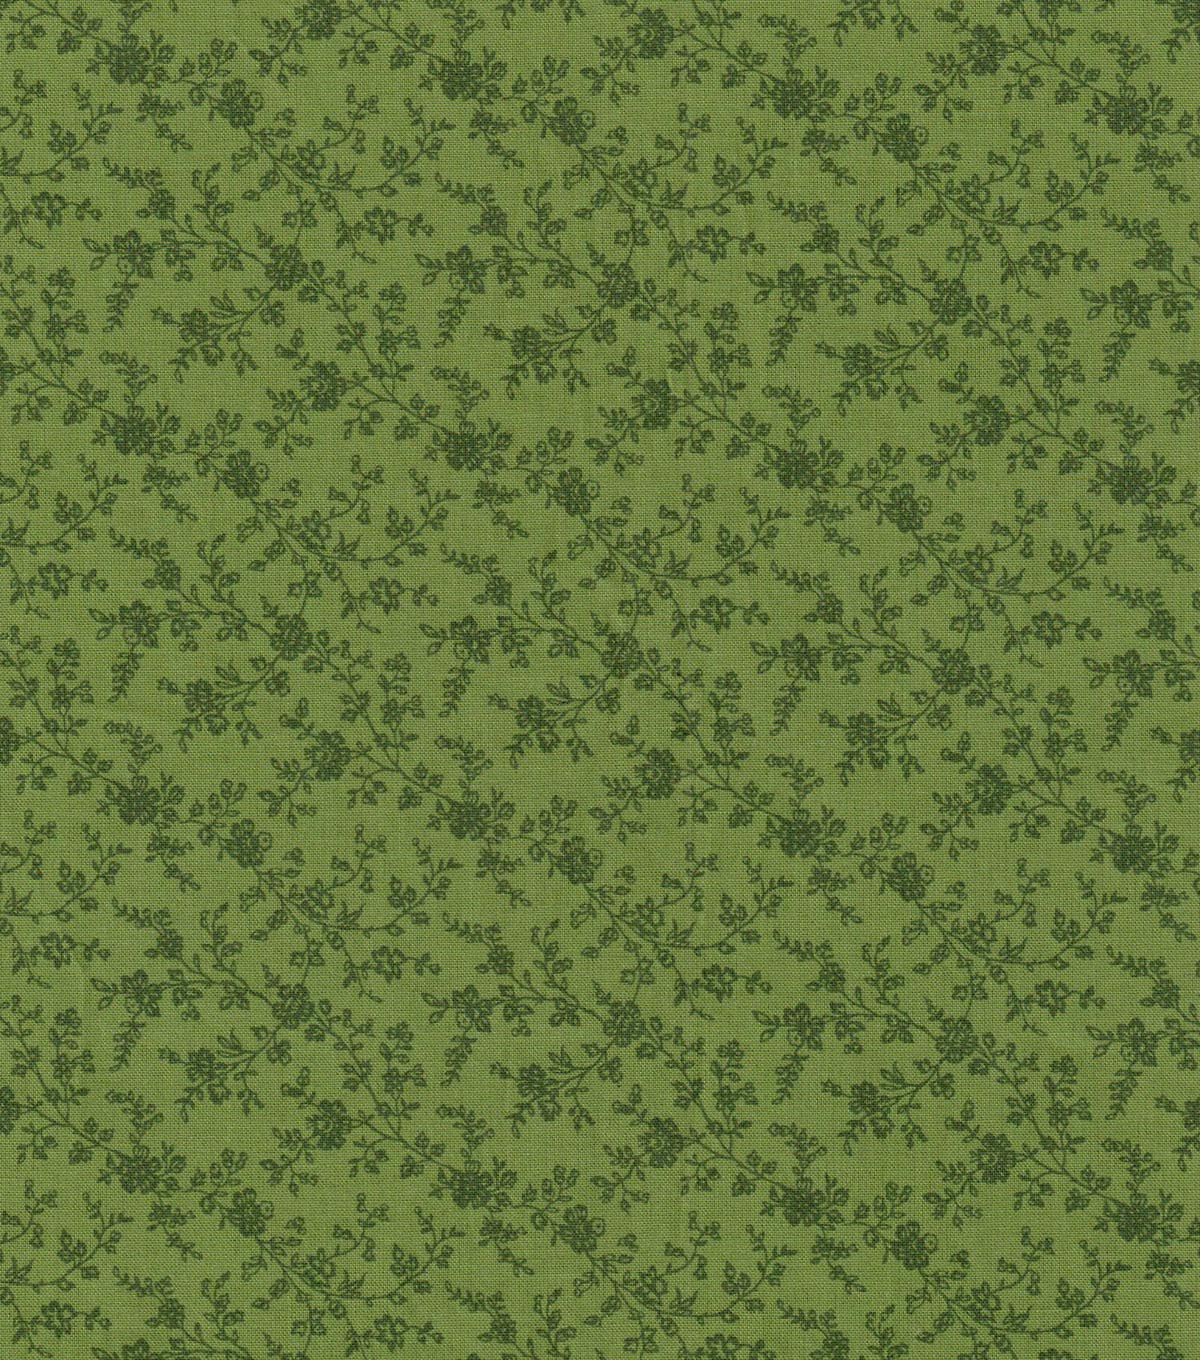 Keepsake Calico Cotton Fabric -Green Vine